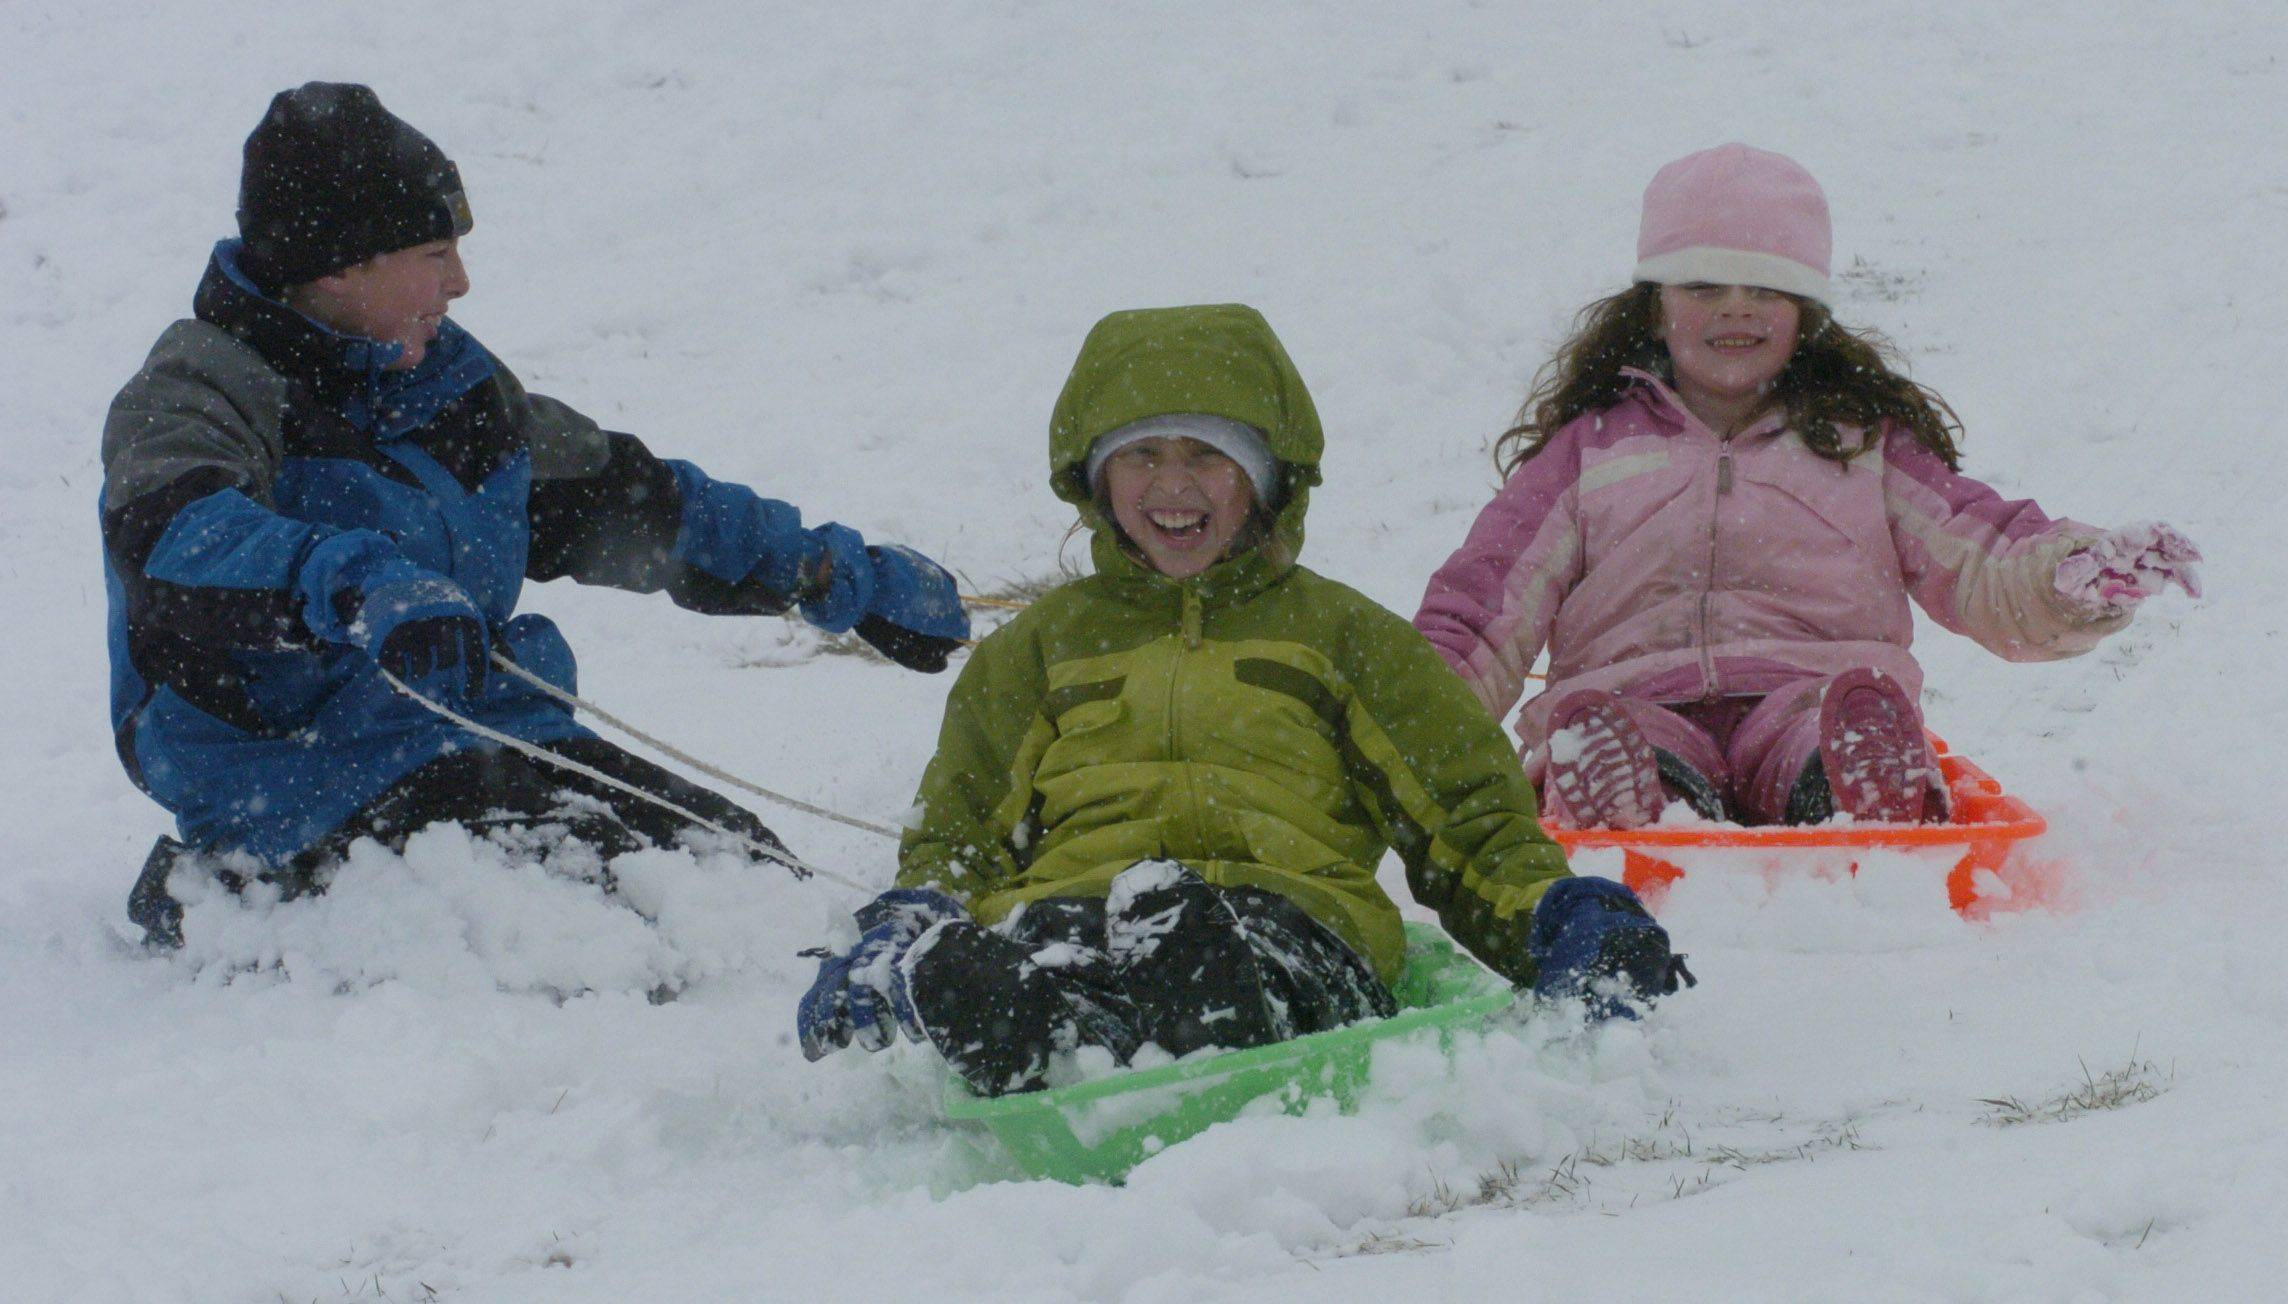 Left to right, Matthew Kieft, 11, of Libertyville, his sister Rebecca, 9, and friend Keely Murphy, 6, of Mundelein sled down the hill at Community Park, Mundelein, Saturday.